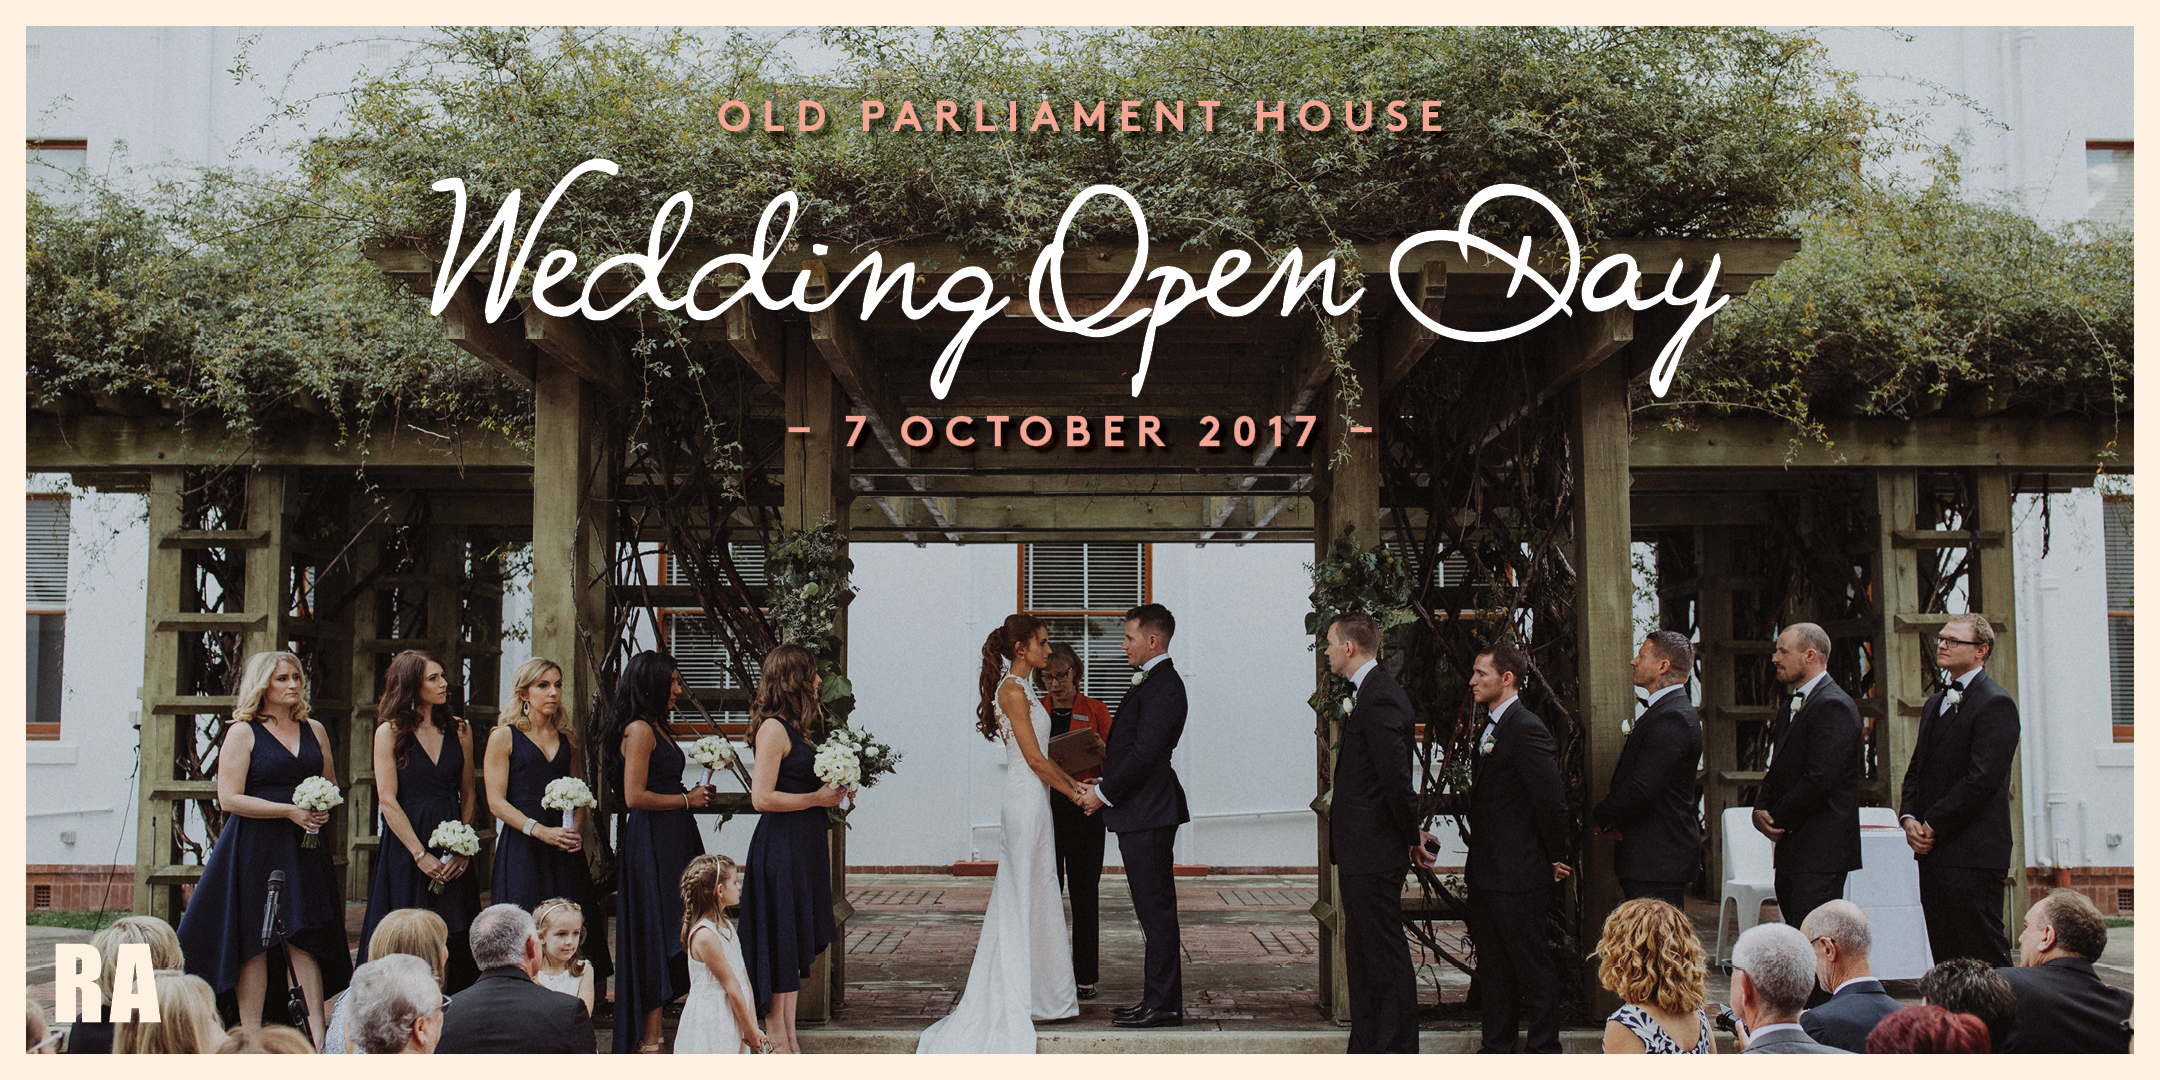 Parliament house wedding